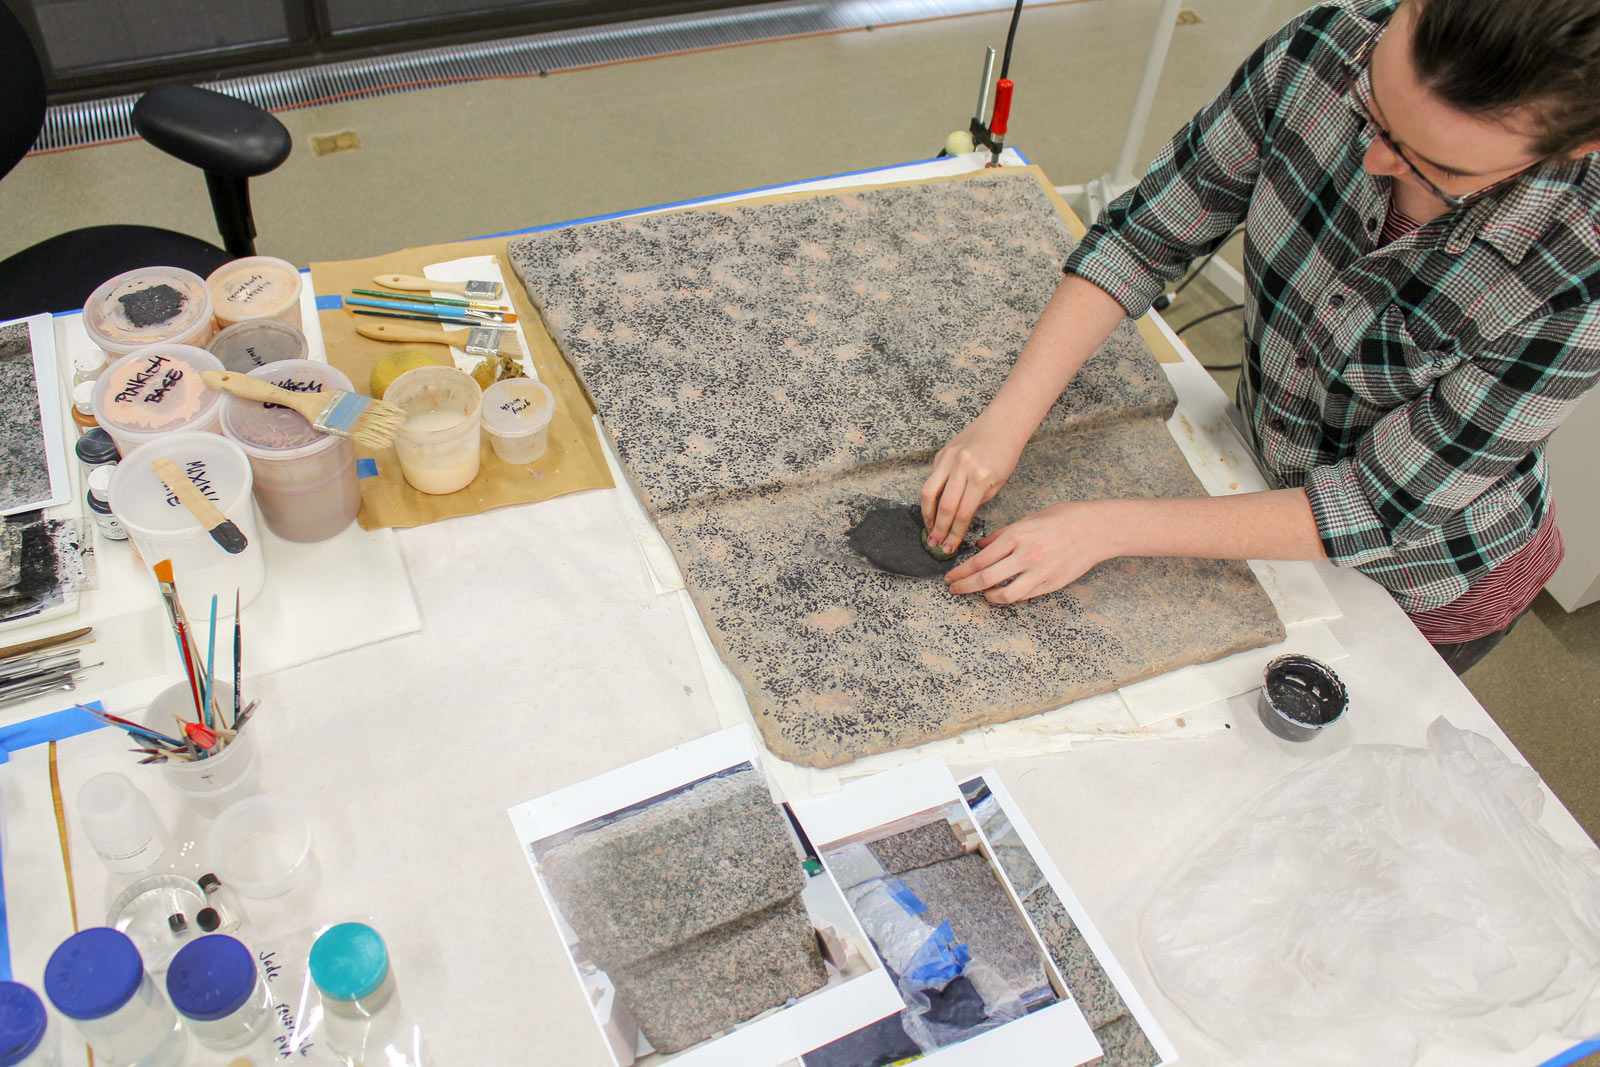 A woman at a table with photos of granite blocks blots a panel to create a textured look.